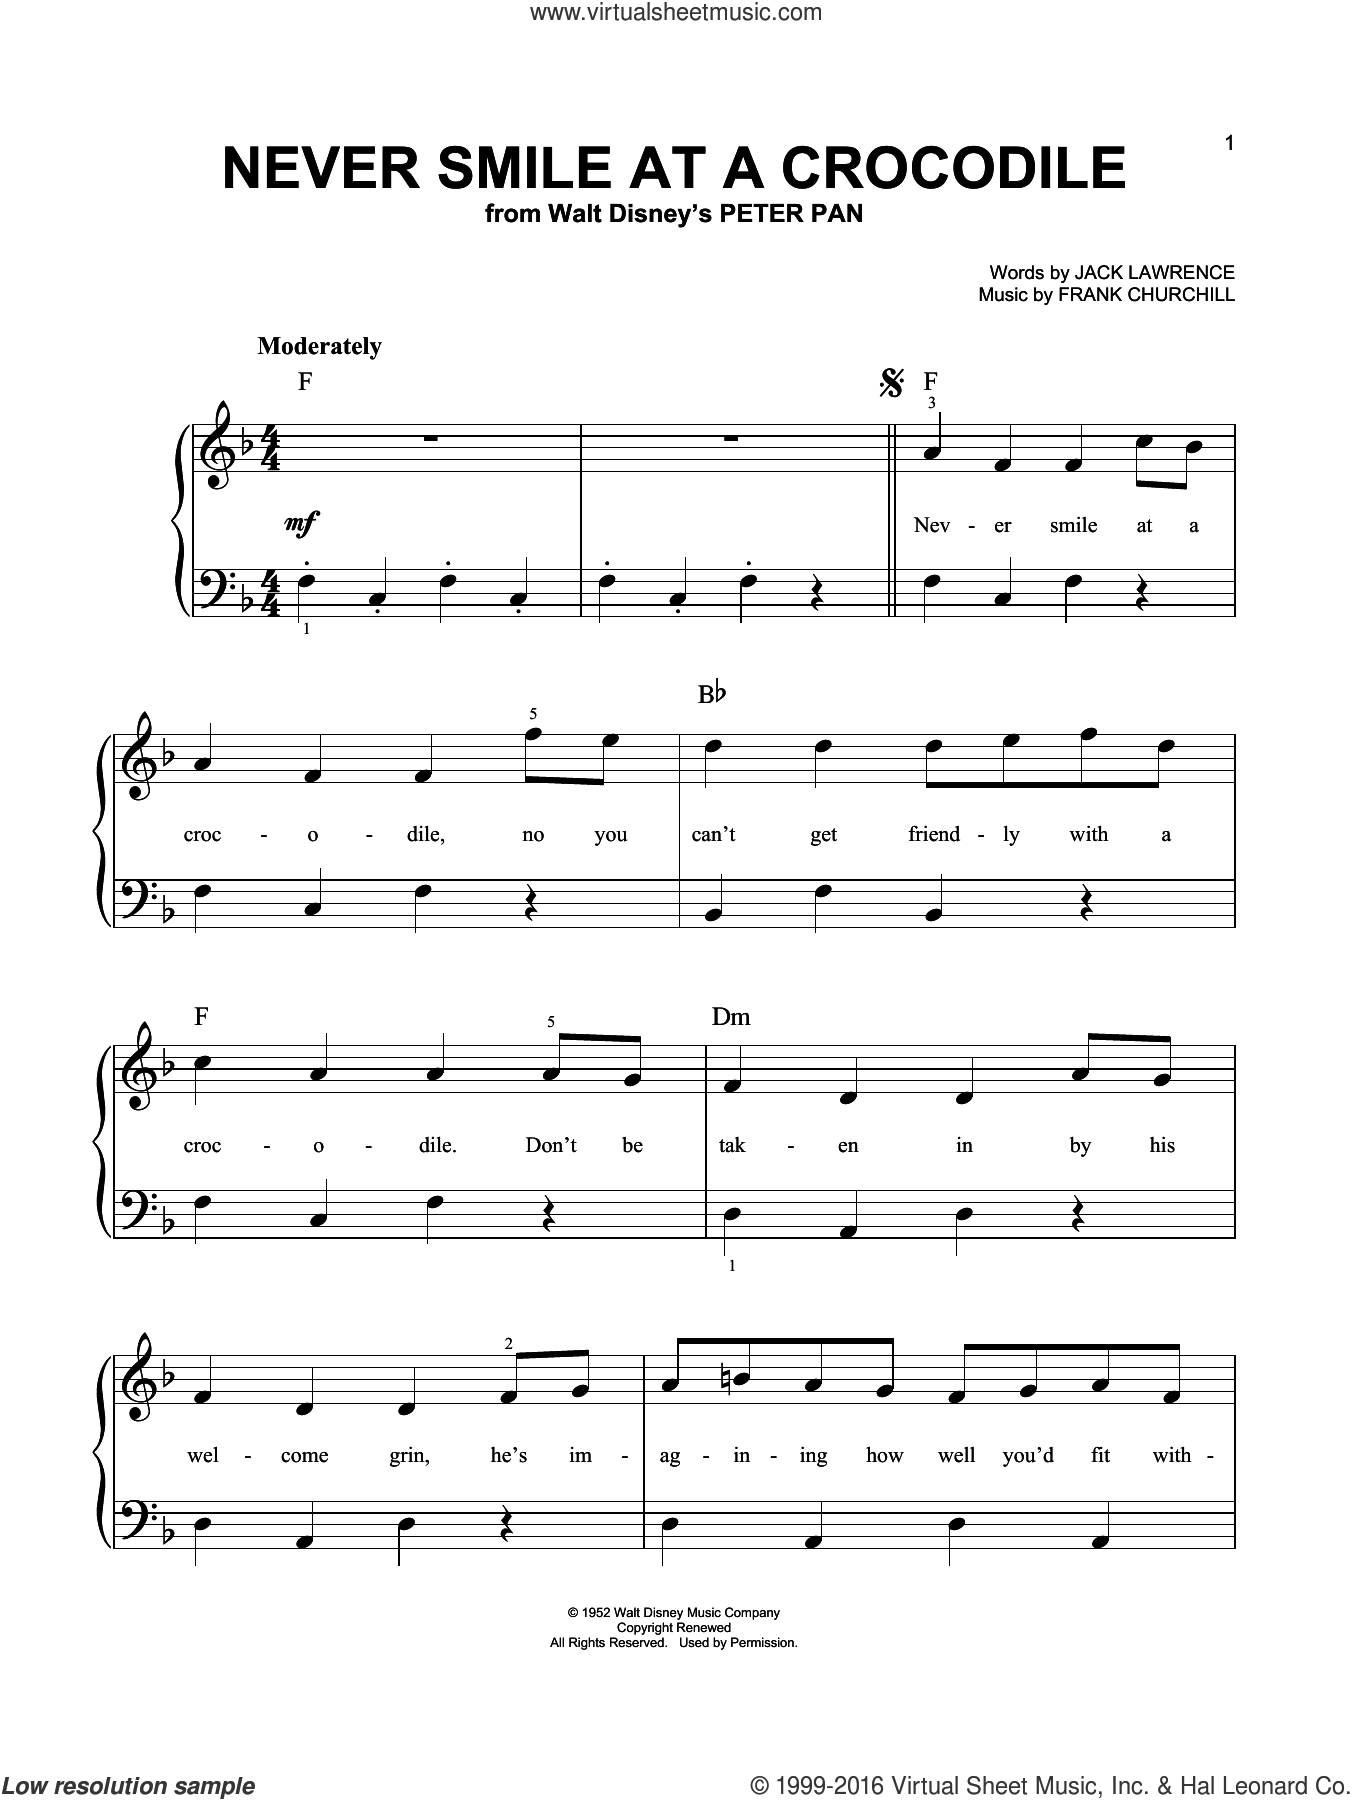 Never Smile At A Crocodile sheet music for piano solo (chords) by Jack Lawrence